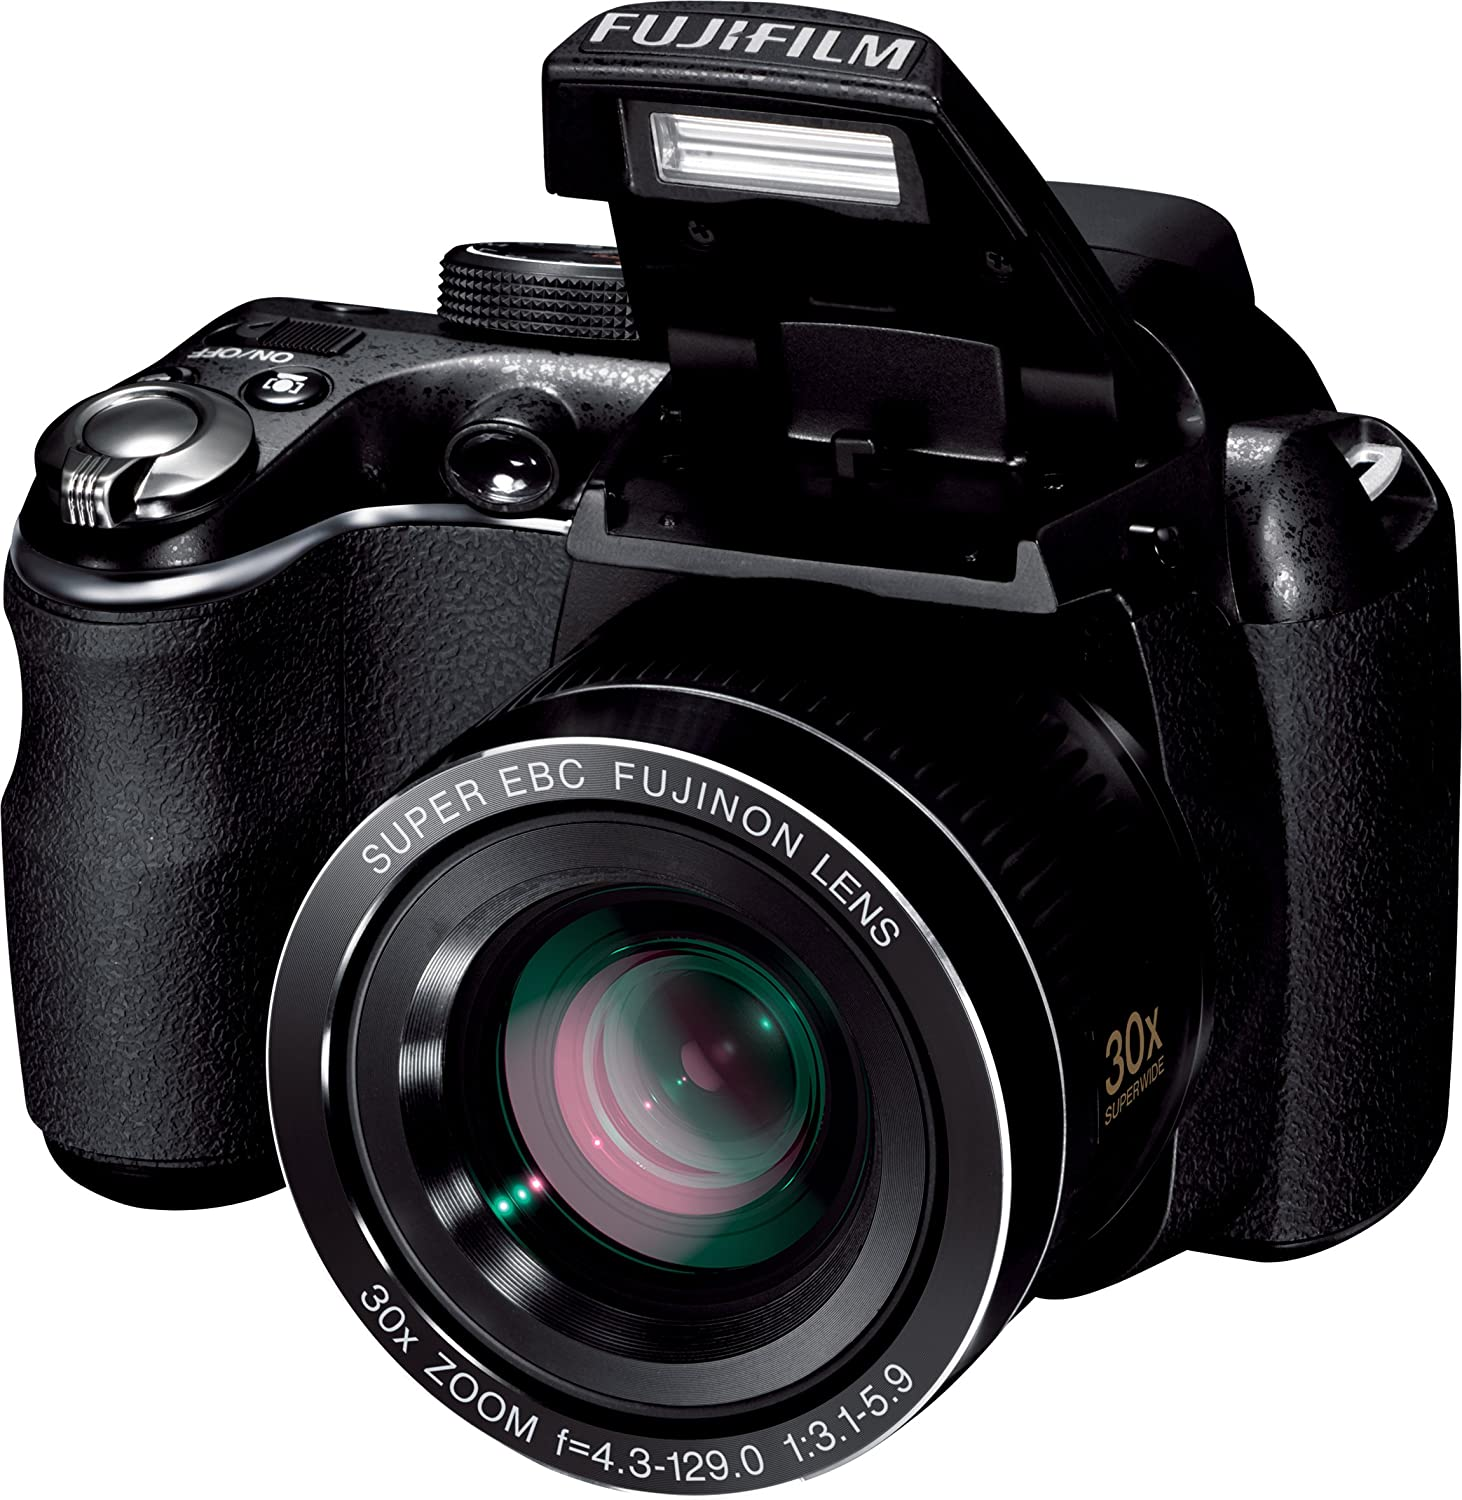 Amazon.com : Fujifilm FinePix S4000 14 MP Digital Camera with Fujinon 30x  Super Wide Angle Optical Zoom Lens and 3-Inch LCD : Point And Shoot Digital  ...